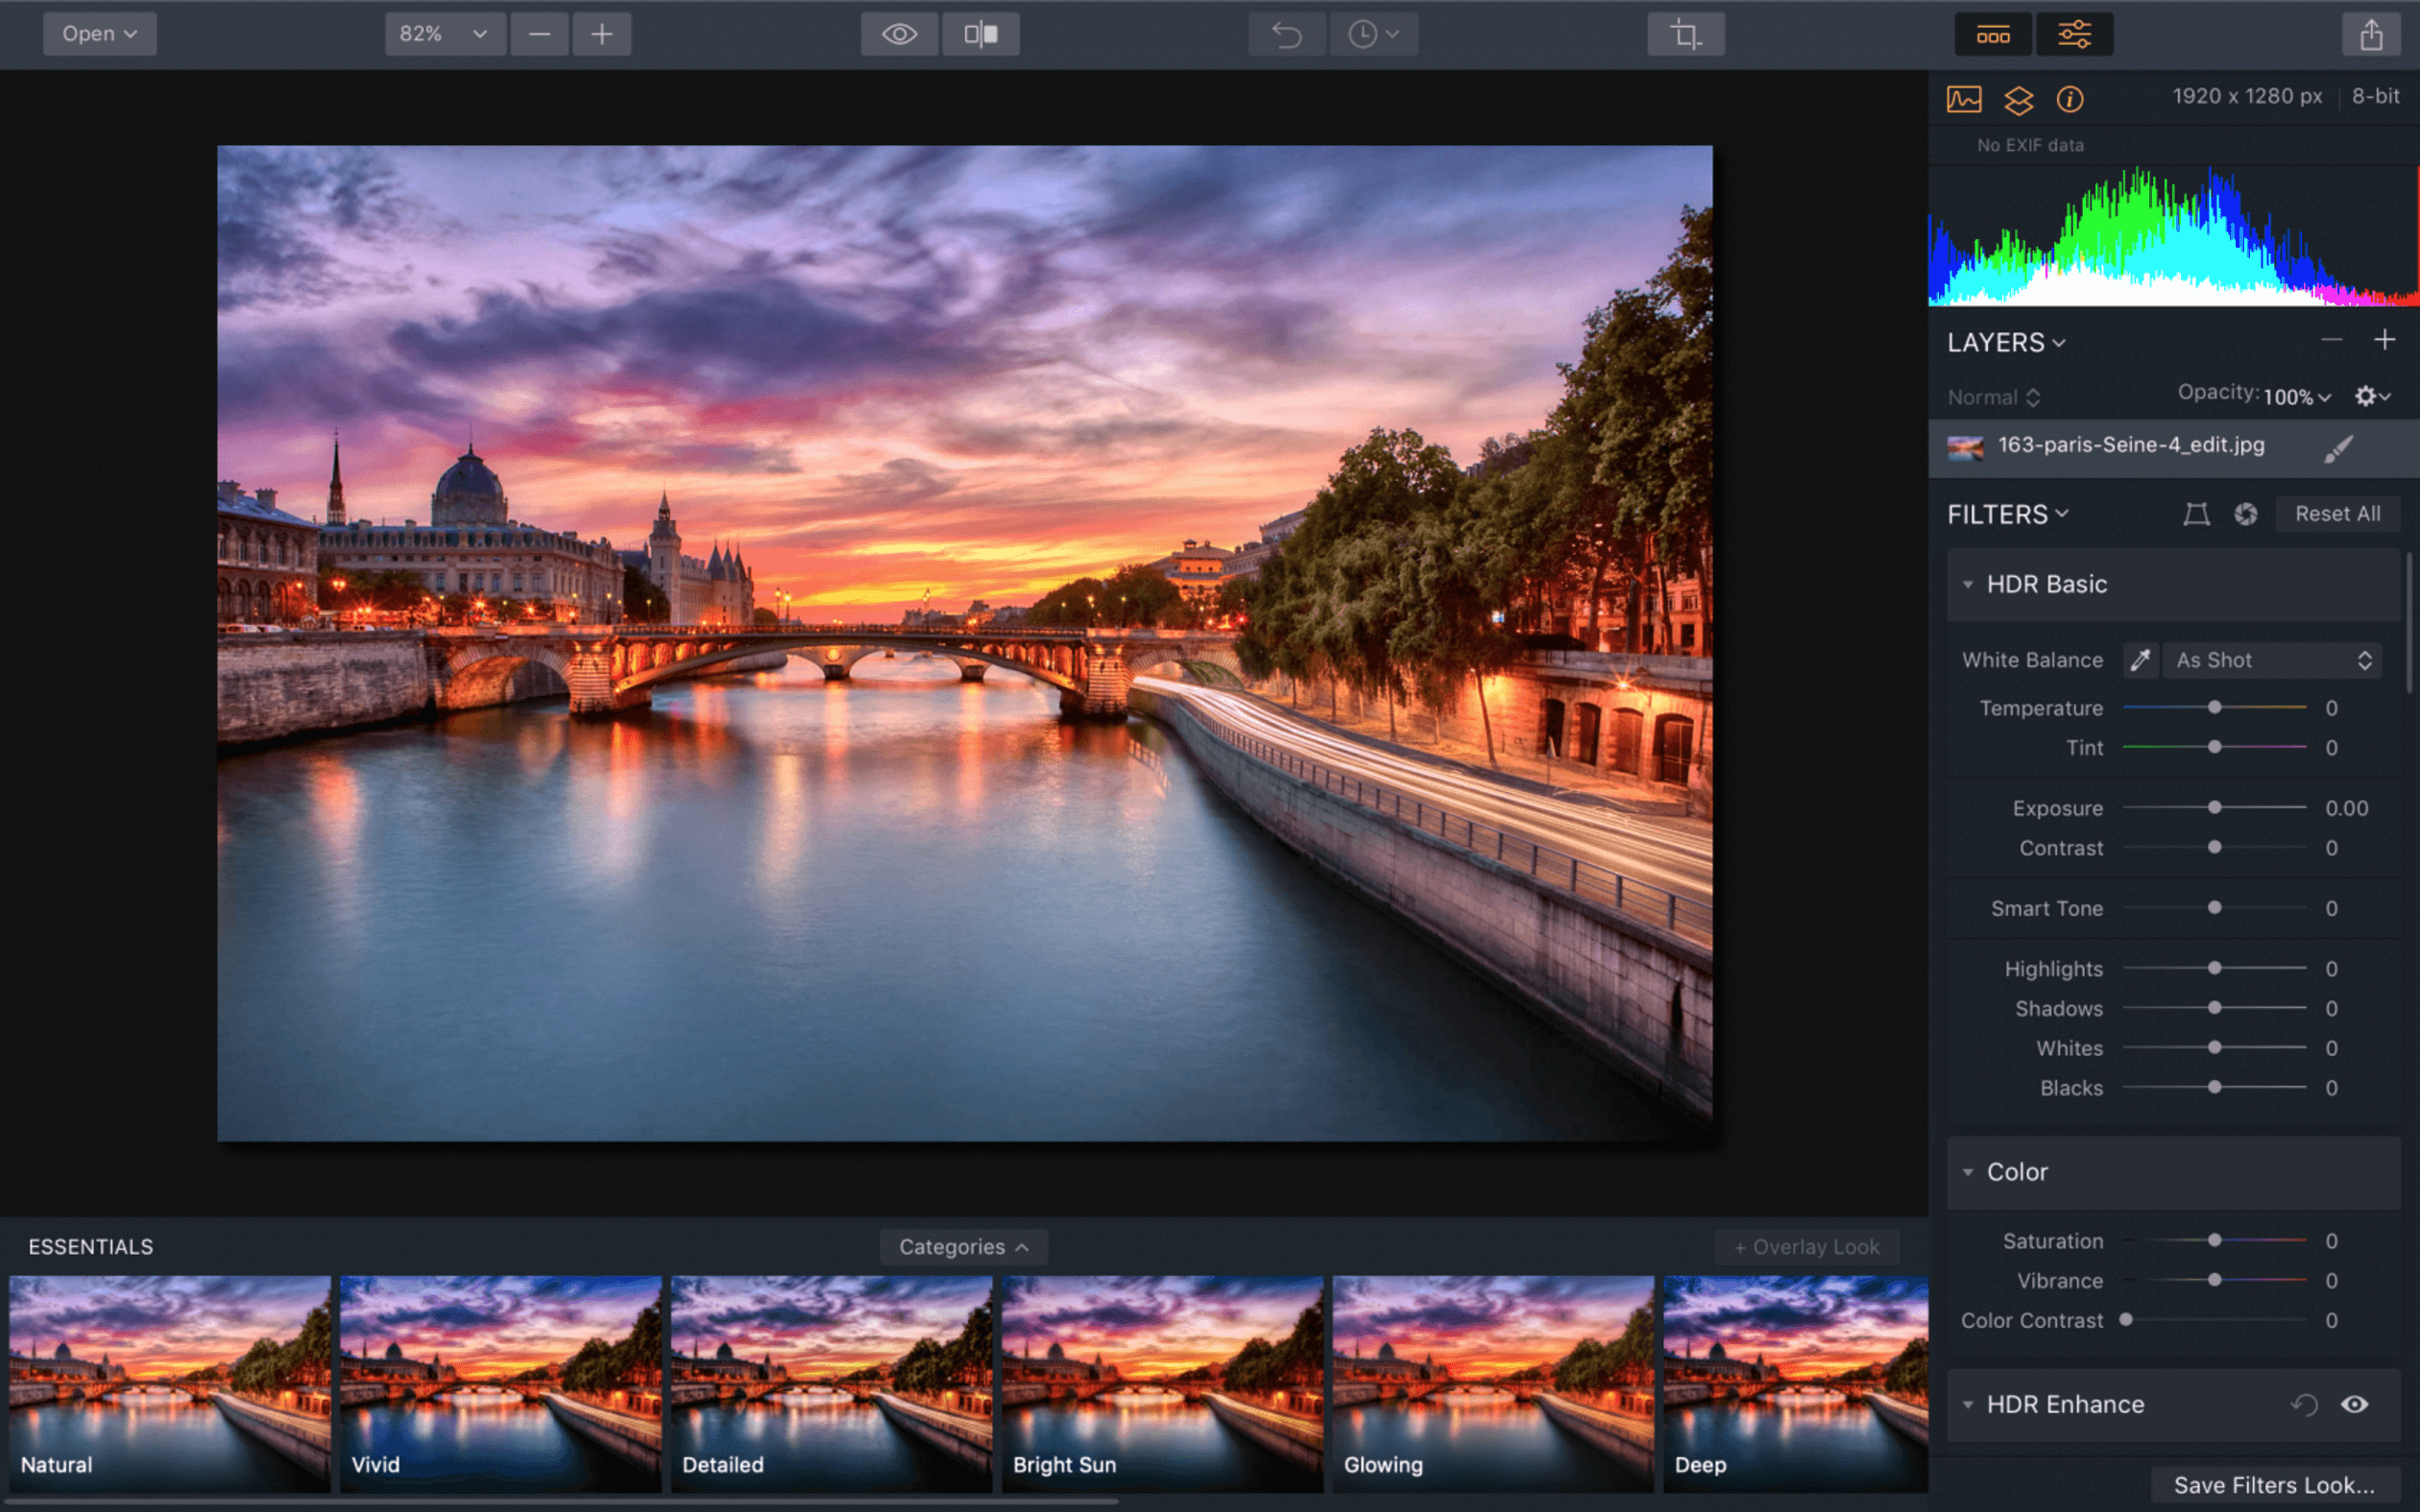 The Aurora HDR Patch